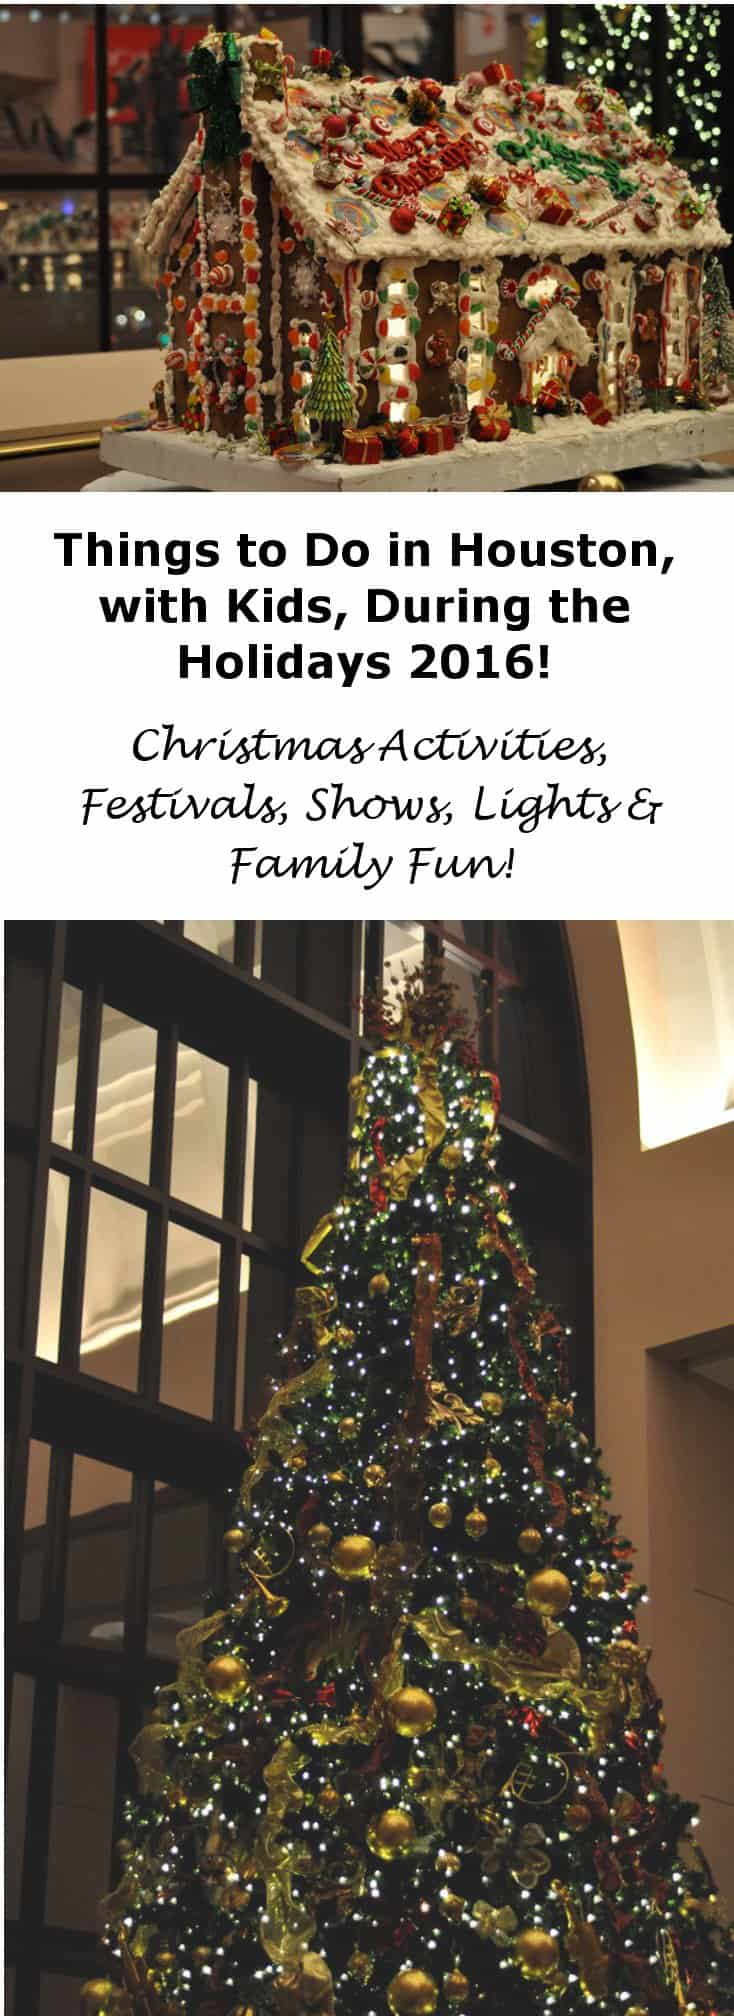 Things to Do in Houston, with Kids, During the Holidays 2016 ...